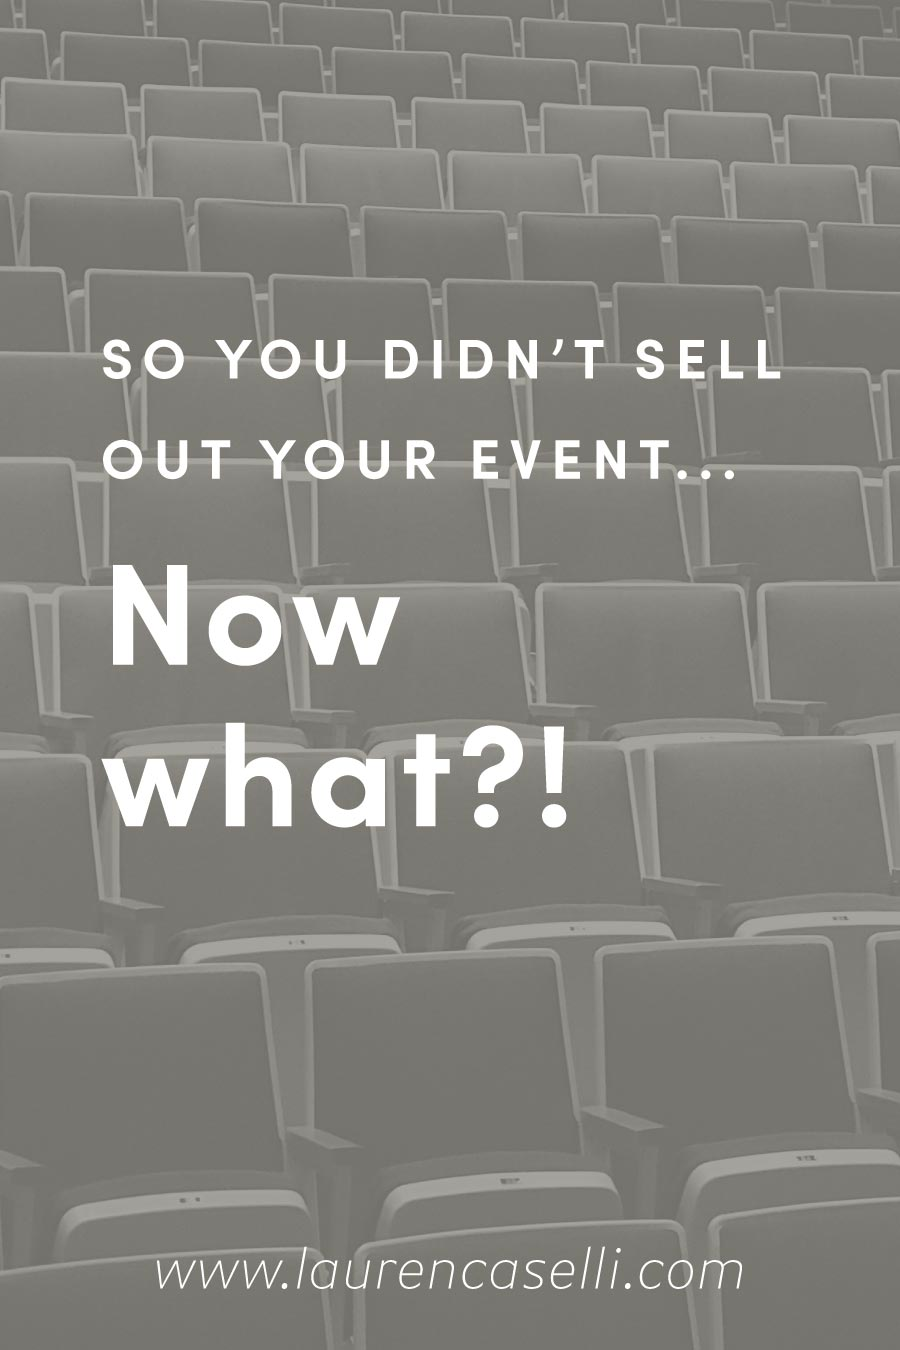 Struggling because you didn't sell your event out? This blog post will talk about WHY selling out doesn't always have to be the goal and WHAT to do if you didn't sell out all your tickets.